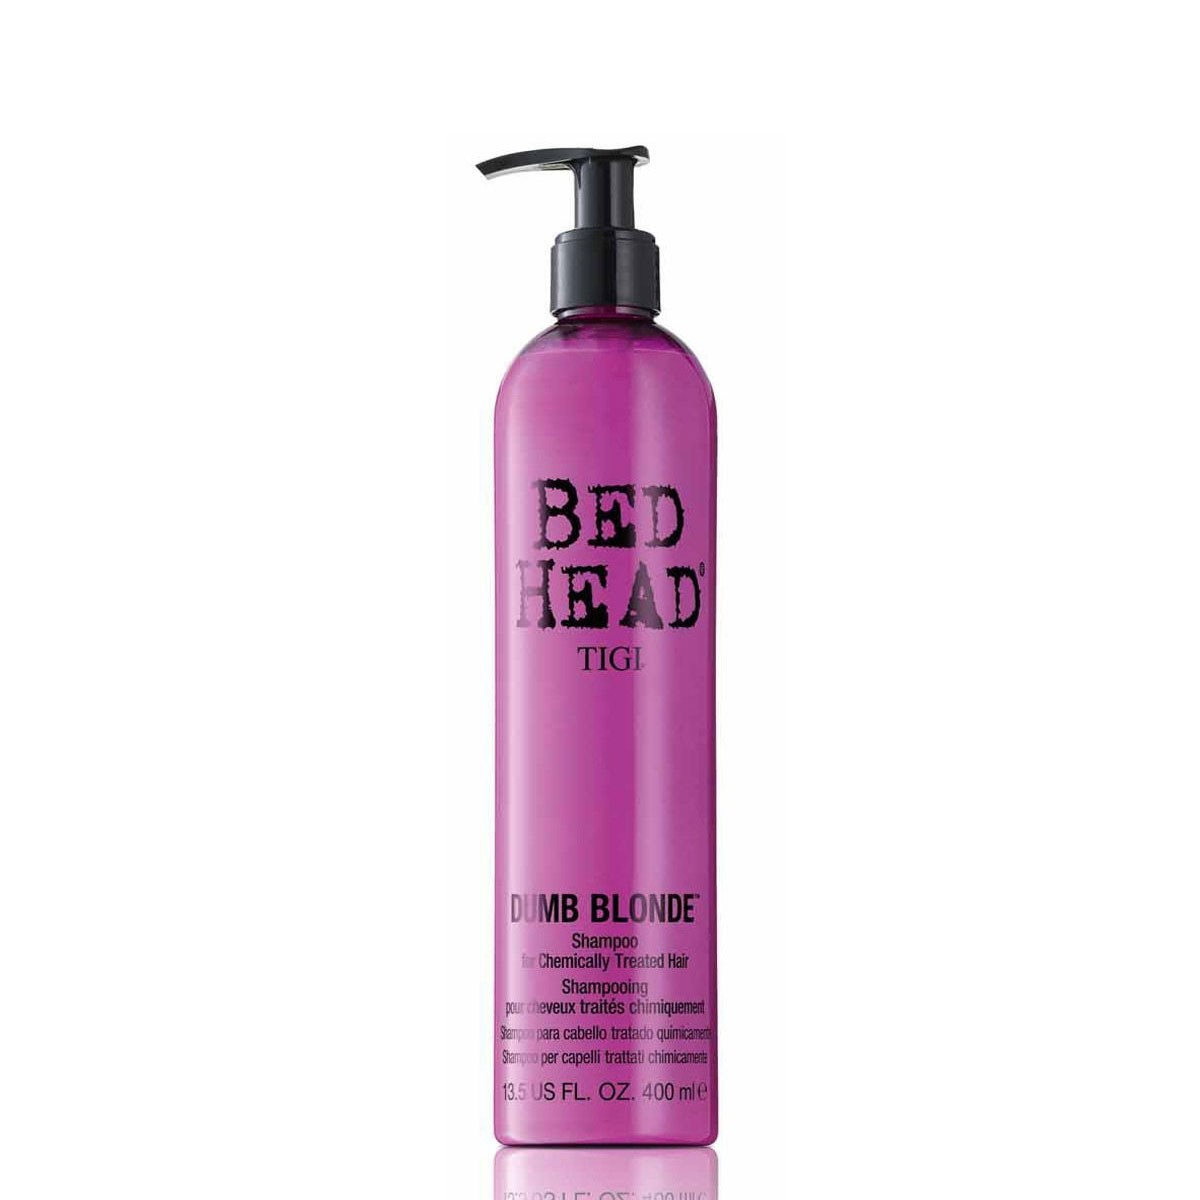 Illustration Shampoing Dumb Blonde Shampoo Bed Head TIGI  400ml